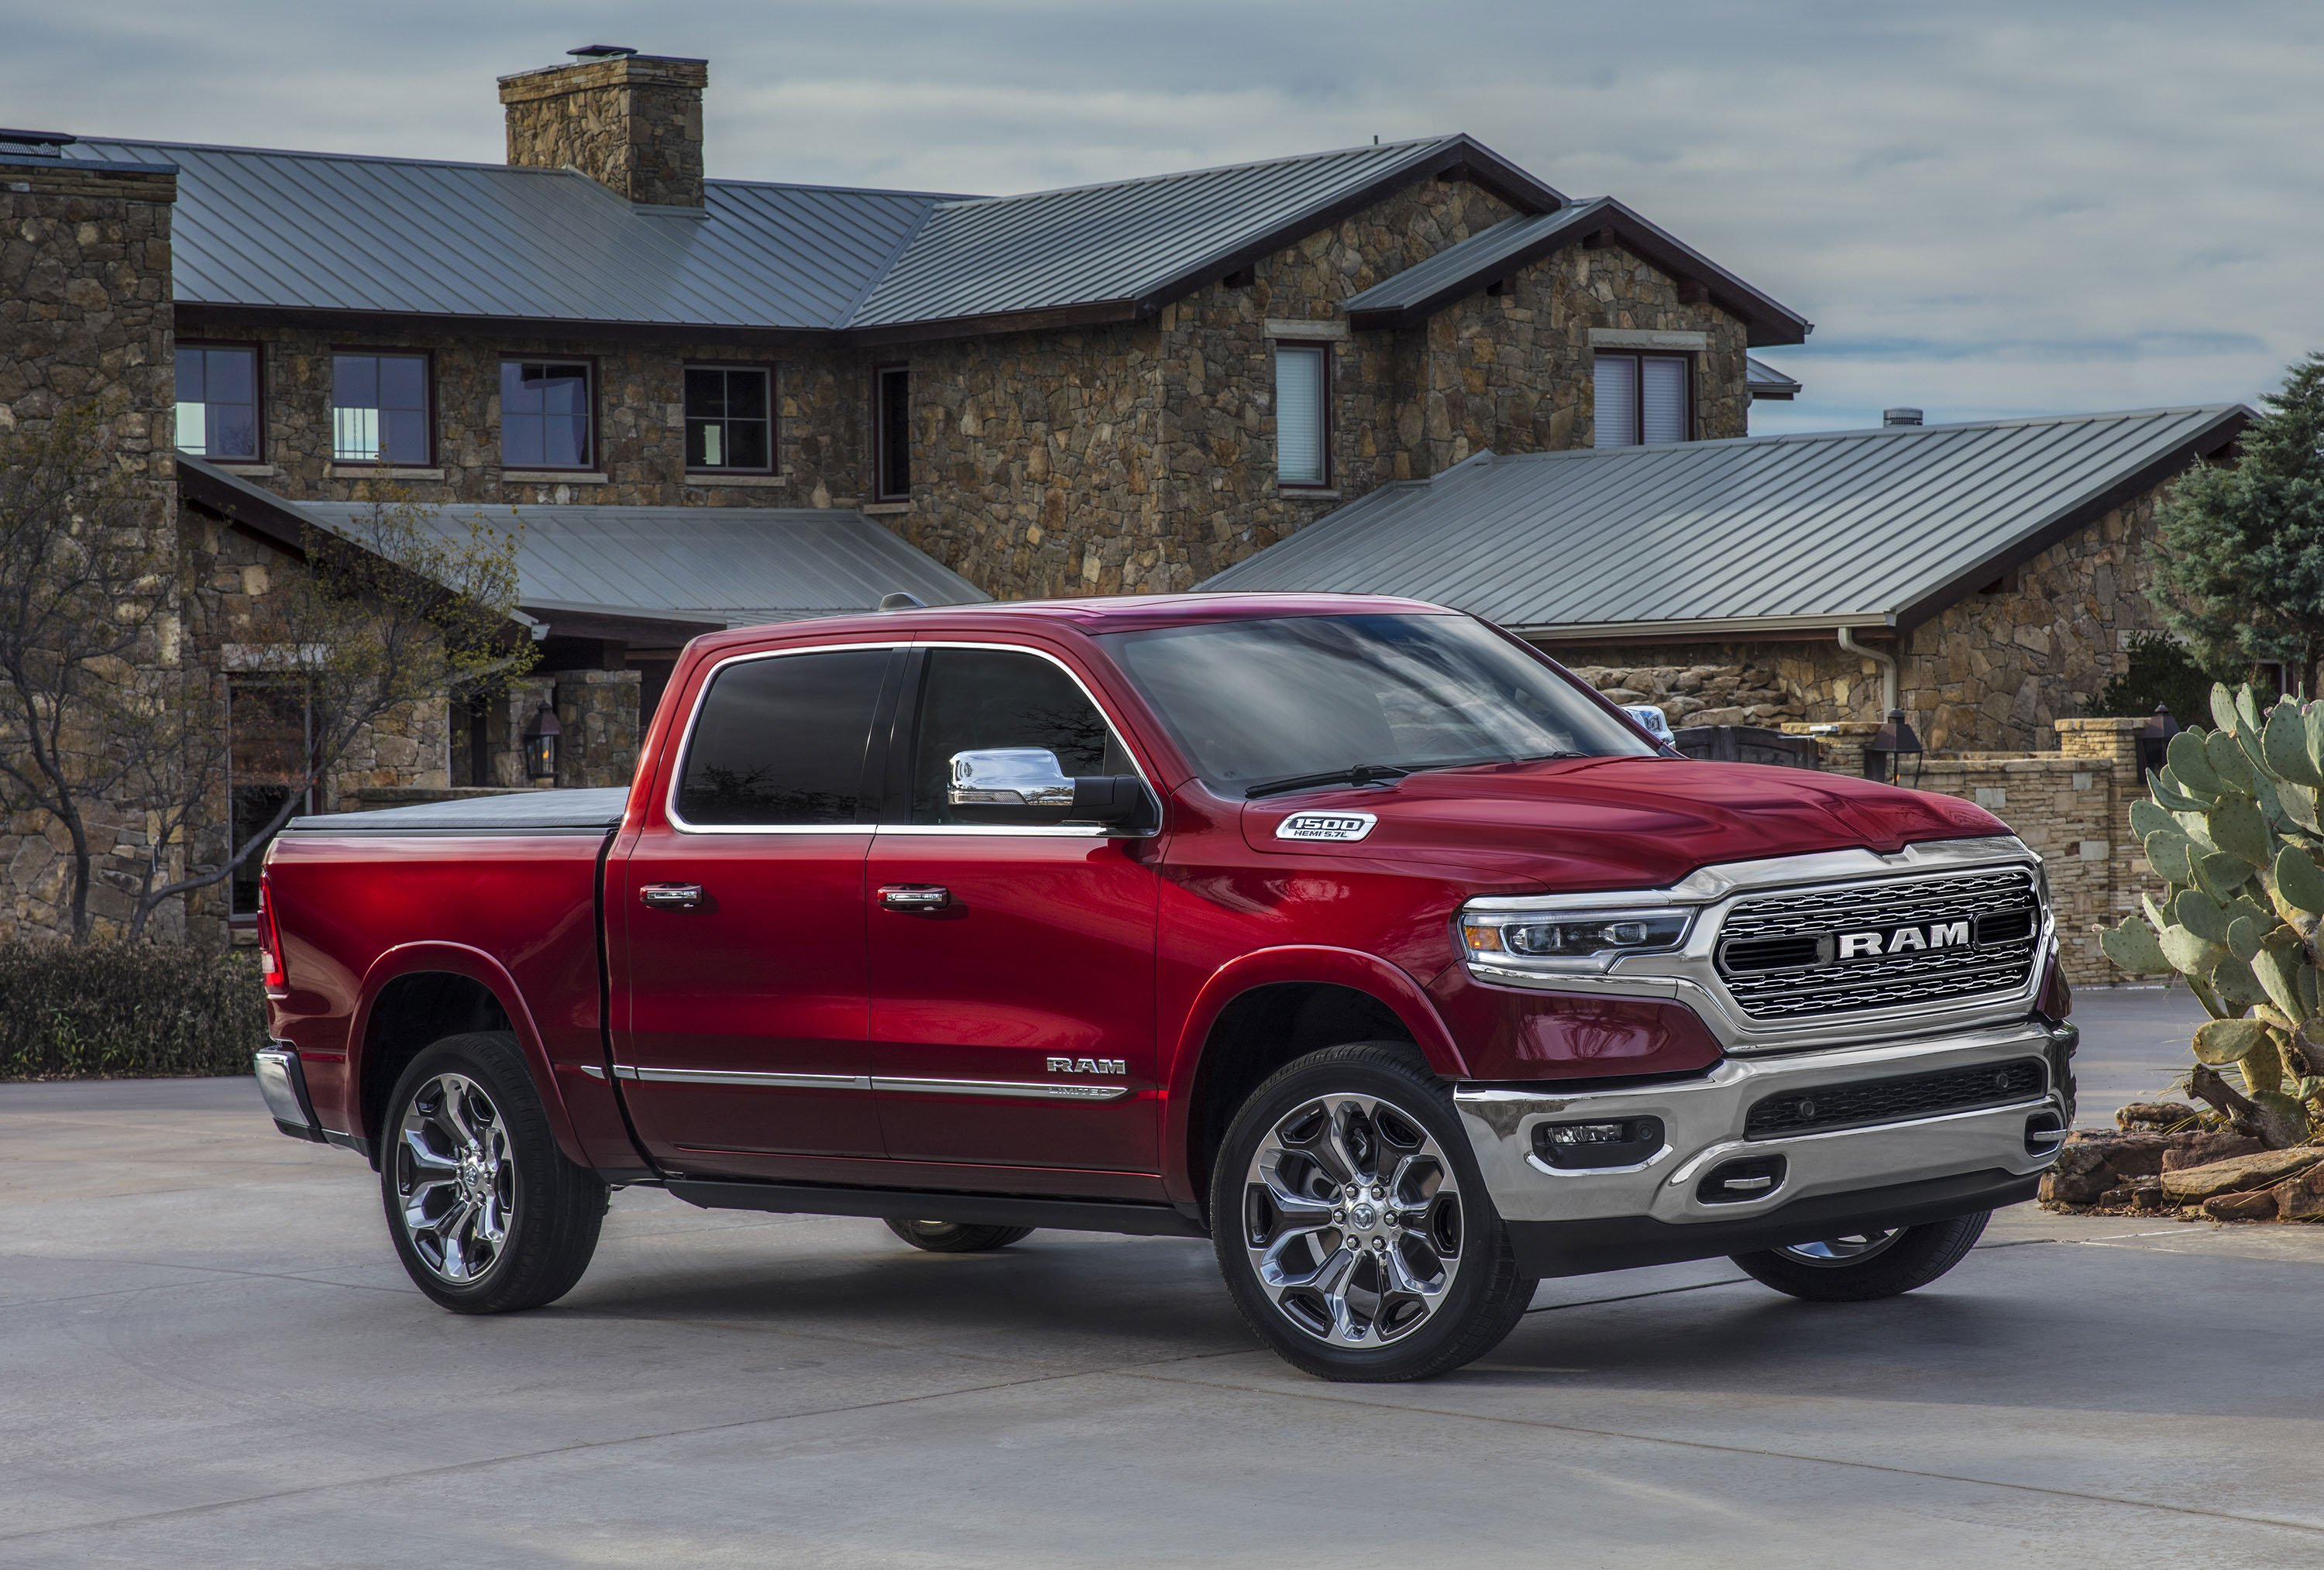 46 Best 2020 Dodge Ram 1500 Exterior and Interior